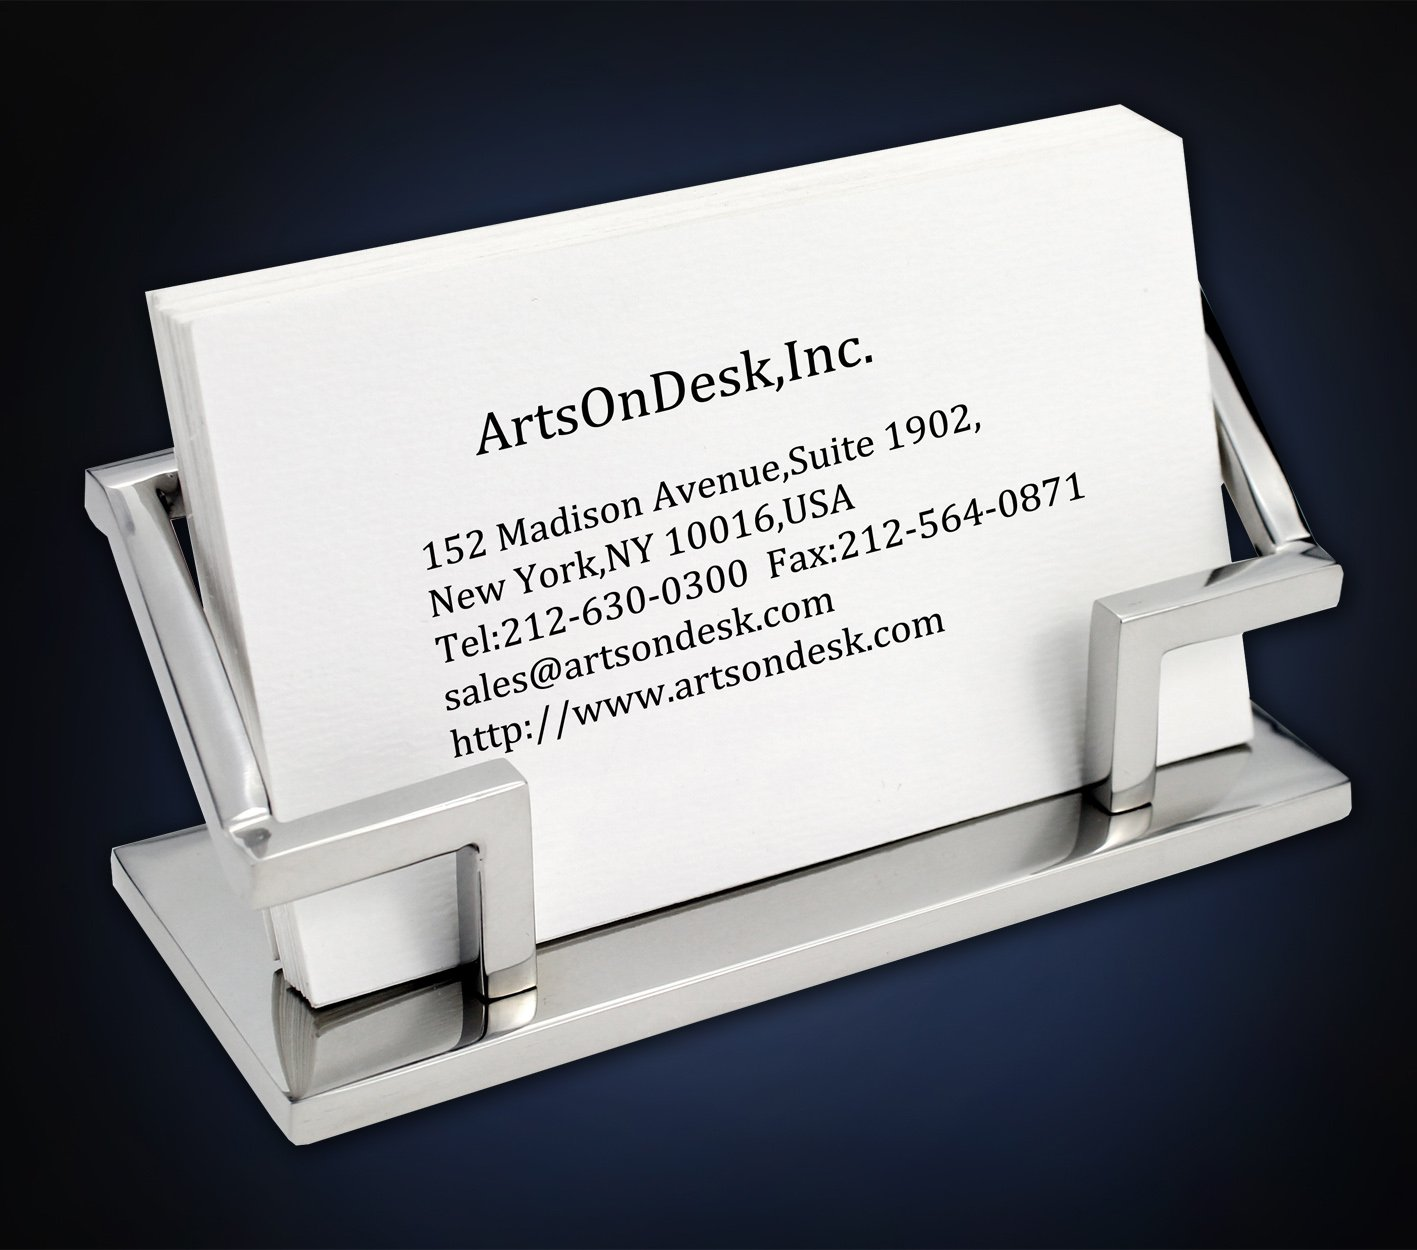 ArtsOnDesk Modern Art Business Card Holder Mr101 Stainless Steel Mirror Polish Luxury Desktop Desk Office Accessory Stand Case Organizer Day Birthday Gift Thanksgiving Gift Christmas Gift Inc.